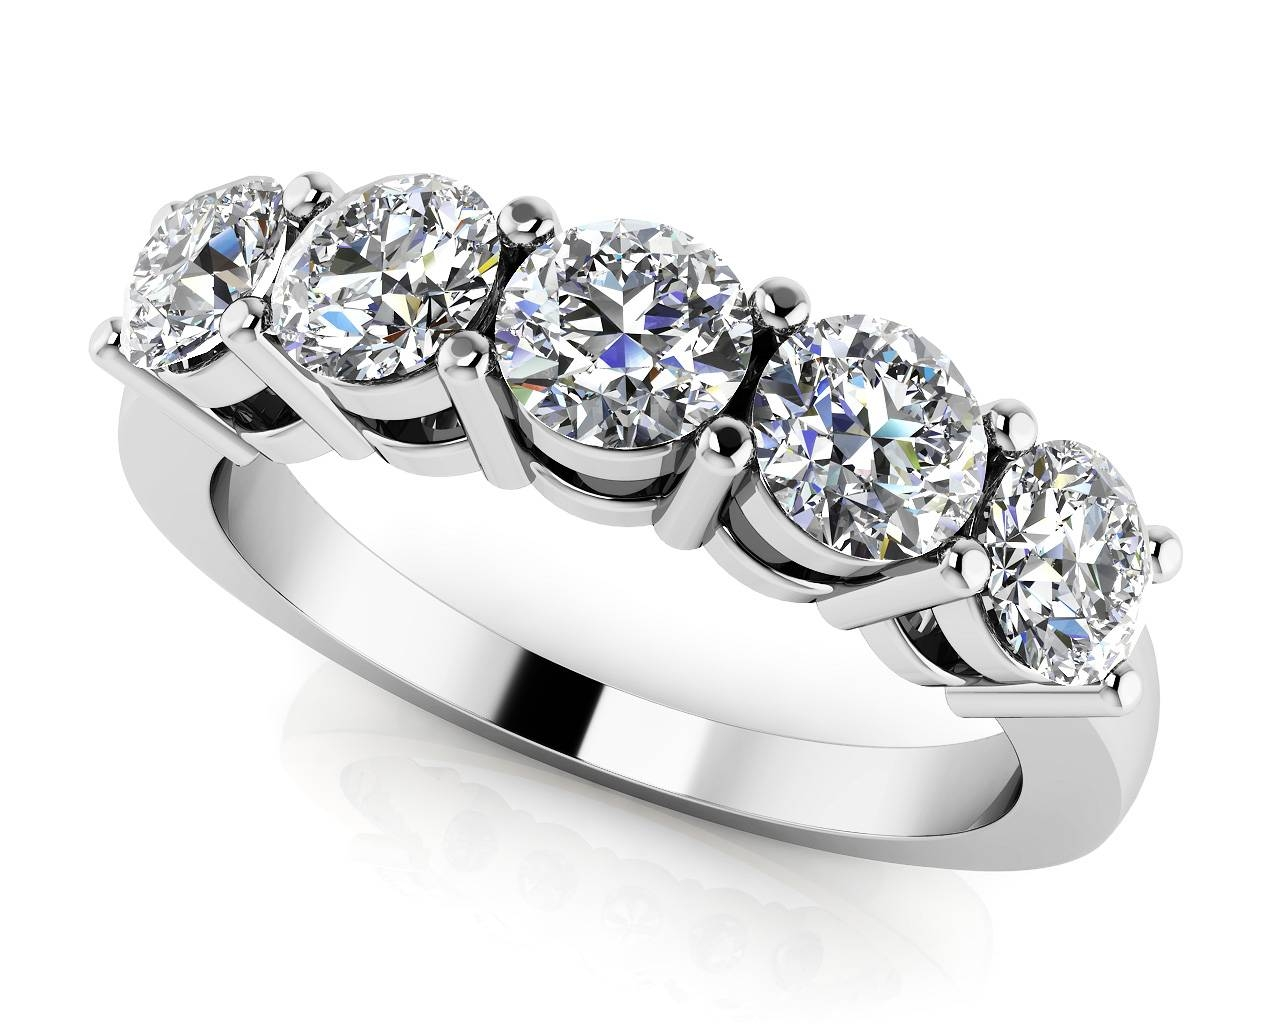 Design Your Own Diamond Anniversary Ring & Eternity Ring Pertaining To Most Up To Date 5 Stone Diamond Anniversary Rings (View 6 of 25)